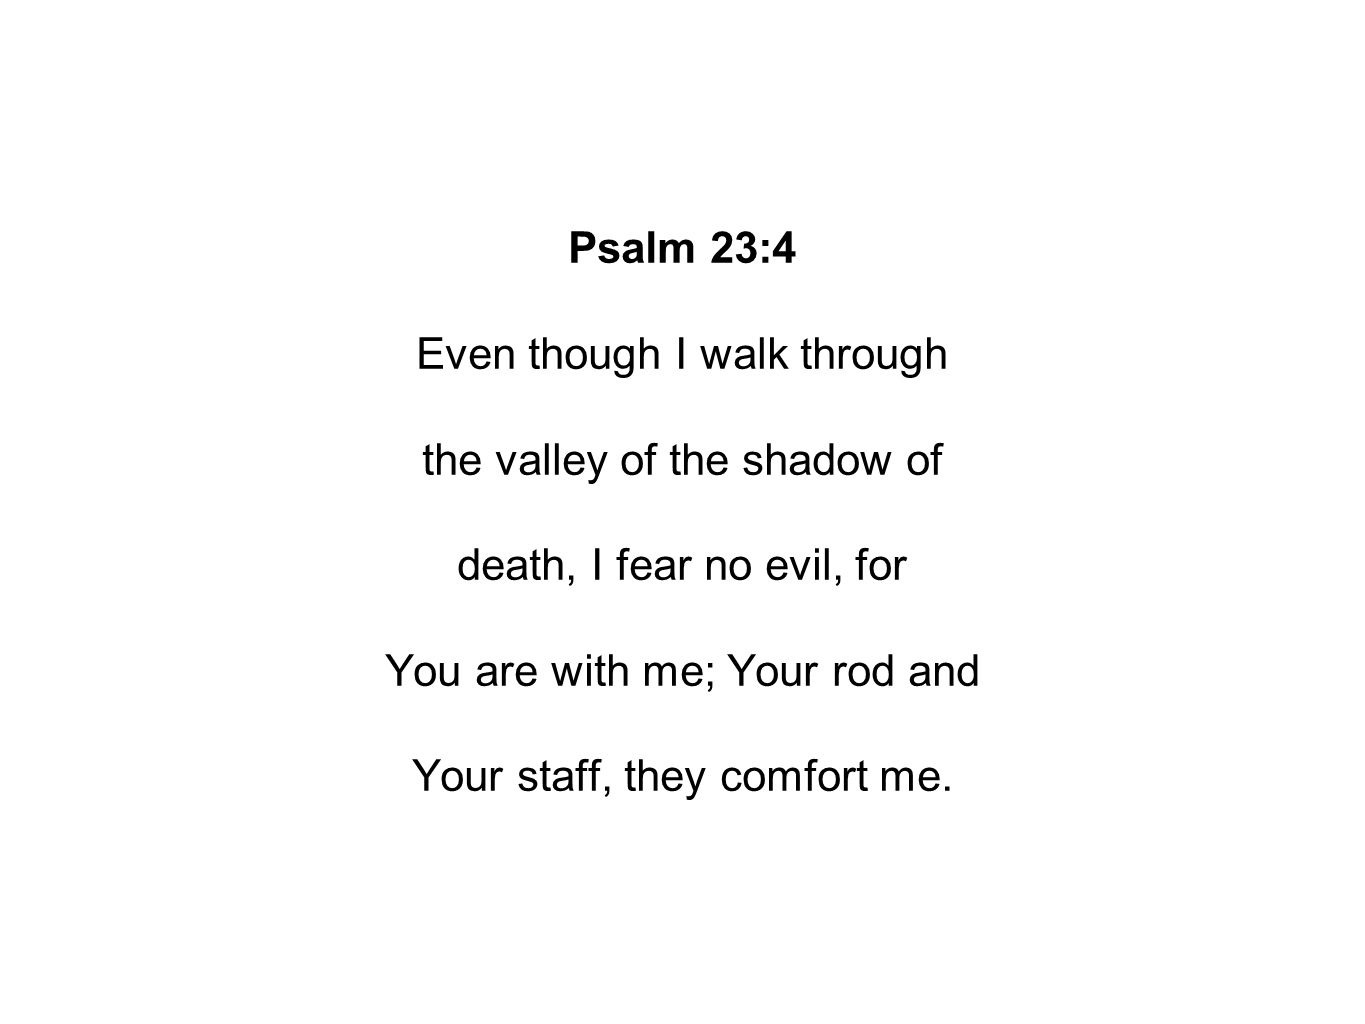 Psalm 23:4 Even though I walk through the valley of the shadow of death, I fear no evil, for You are with me; Your rod and Your staff, they comfort me.